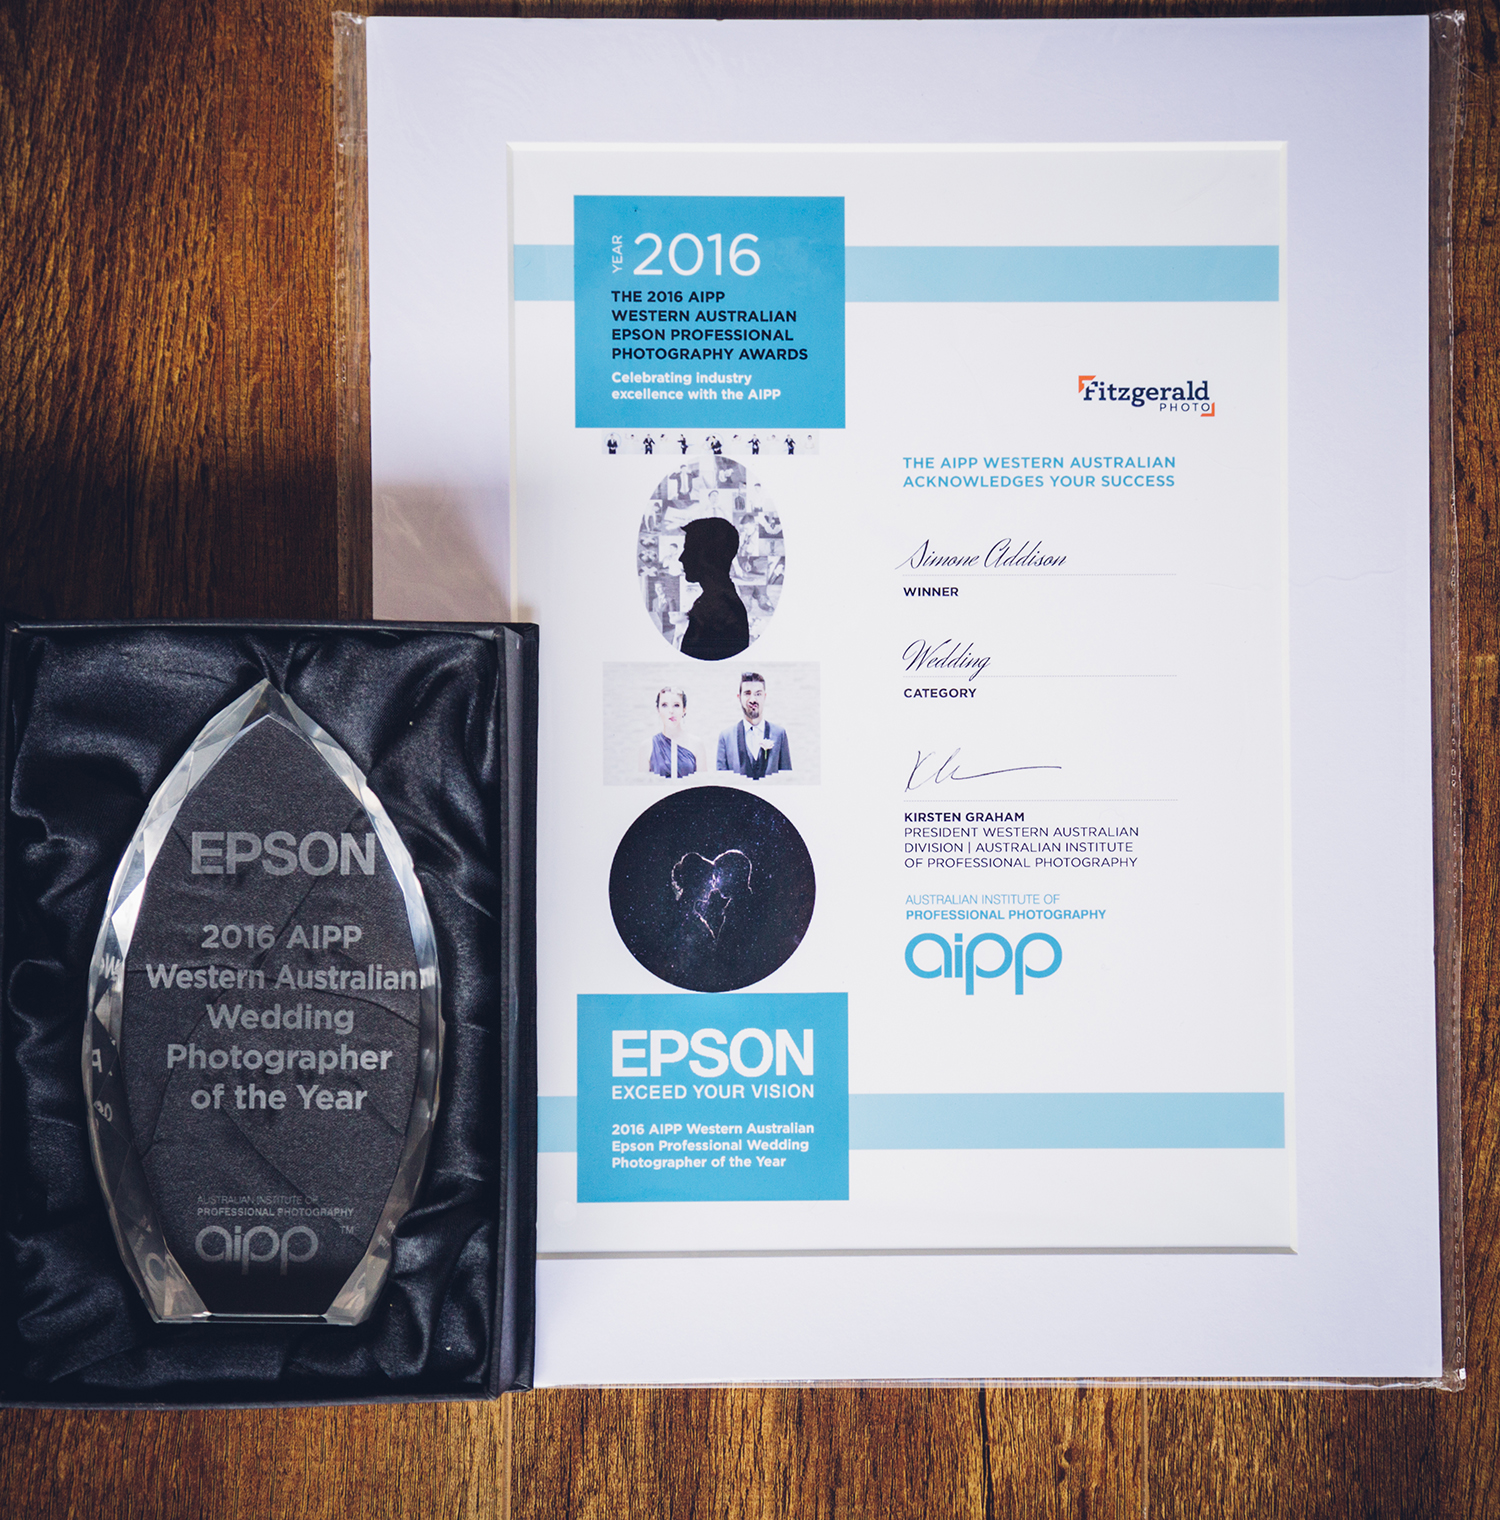 2016 AIPP WA EPSON PROFESSIONAL PHOTOGRAPHY AWARDS